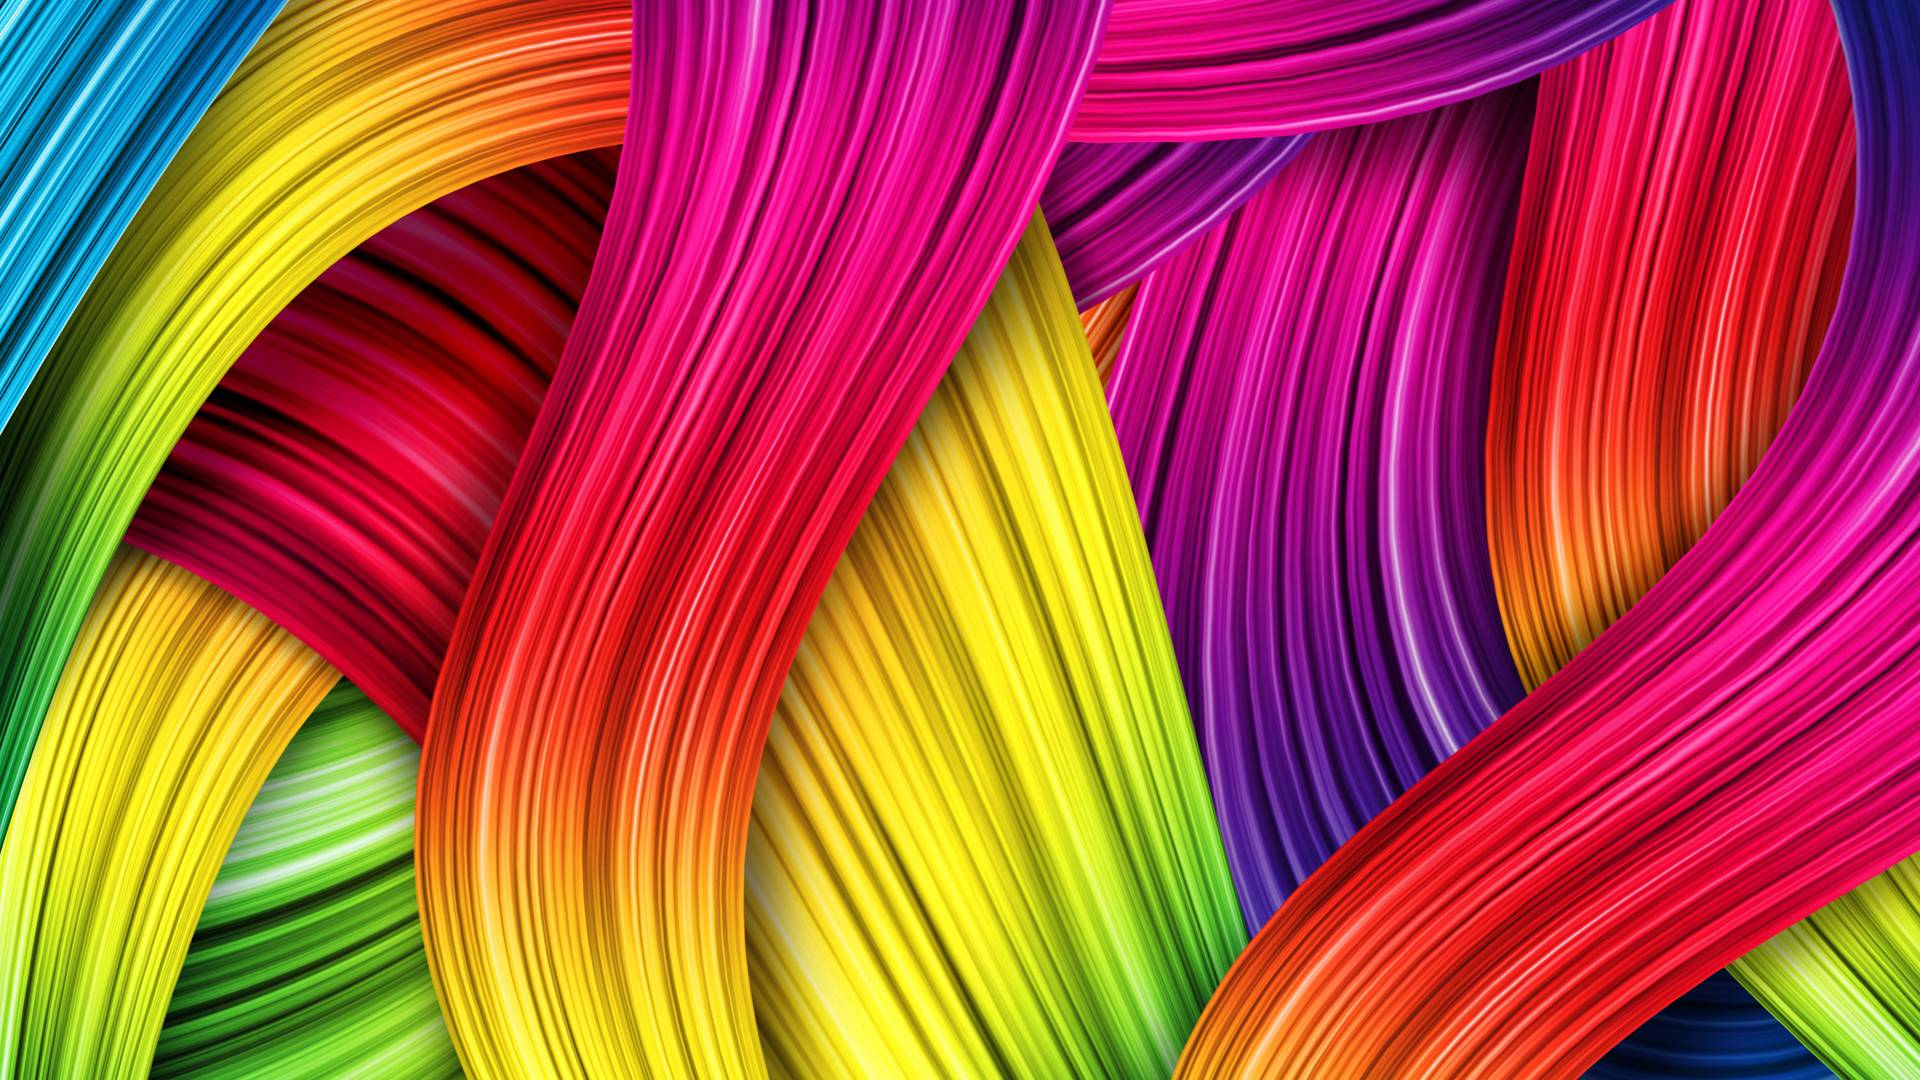 Colorful HD Backgrounds